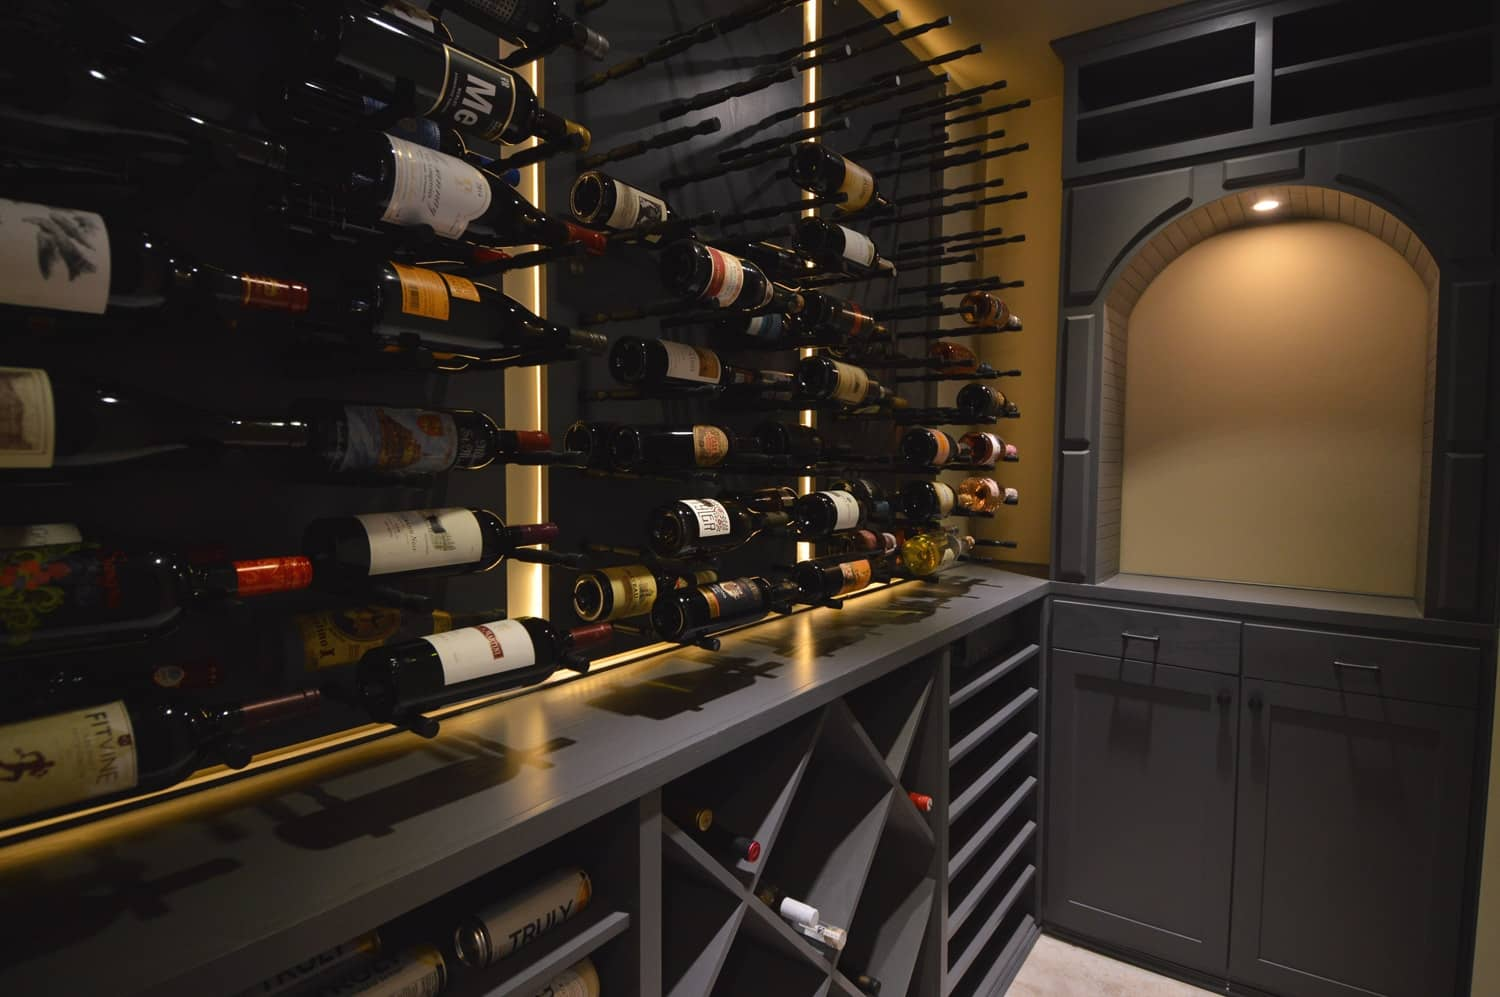 A combination of wine pegs, diamonds bins and wine shelf gives a nice aesthetic appeal to the overall ensemble of the wine cellar.